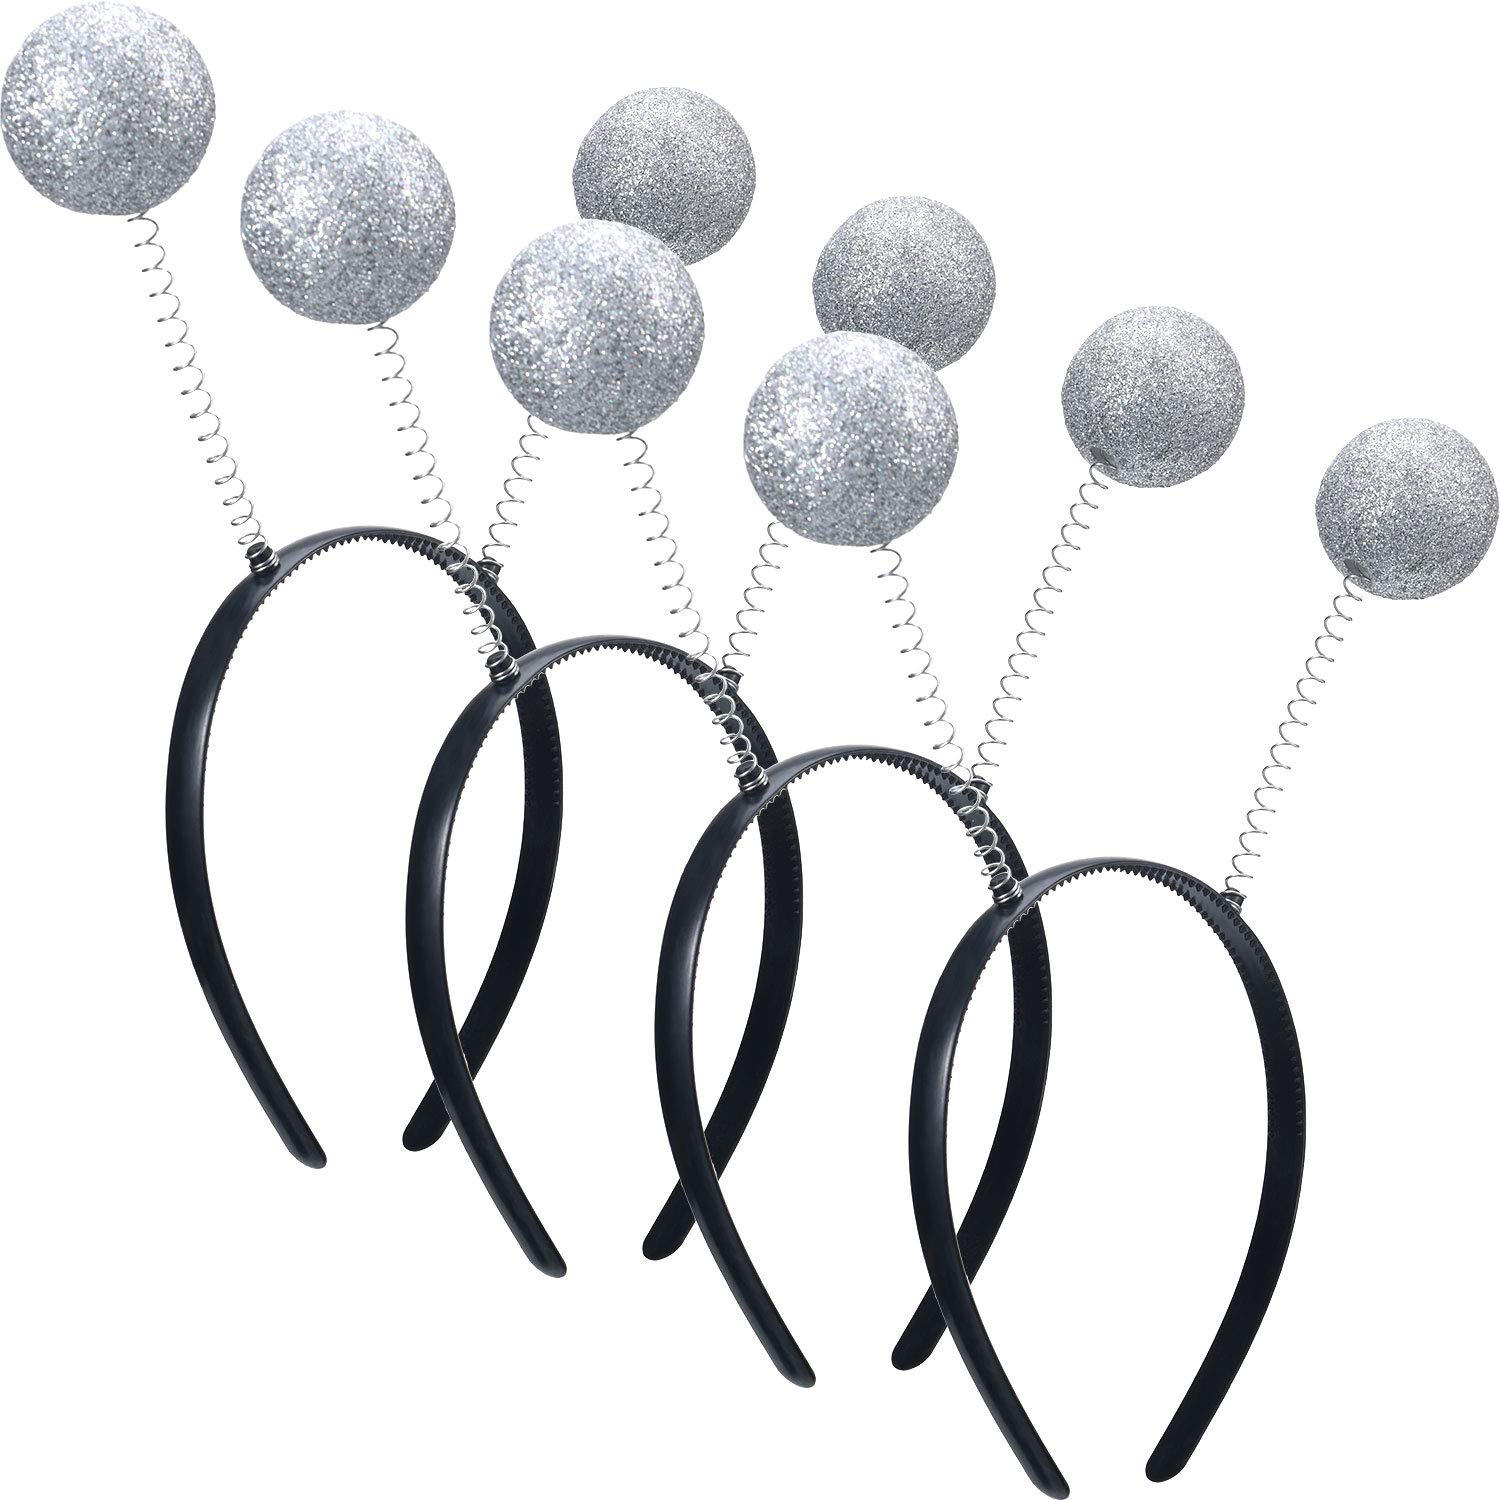 4 Pieces Martian Antenna Headband Alien Headband Boppers Silver Ball Head Boppers for Halloween Party Costume Supplies by Blulu